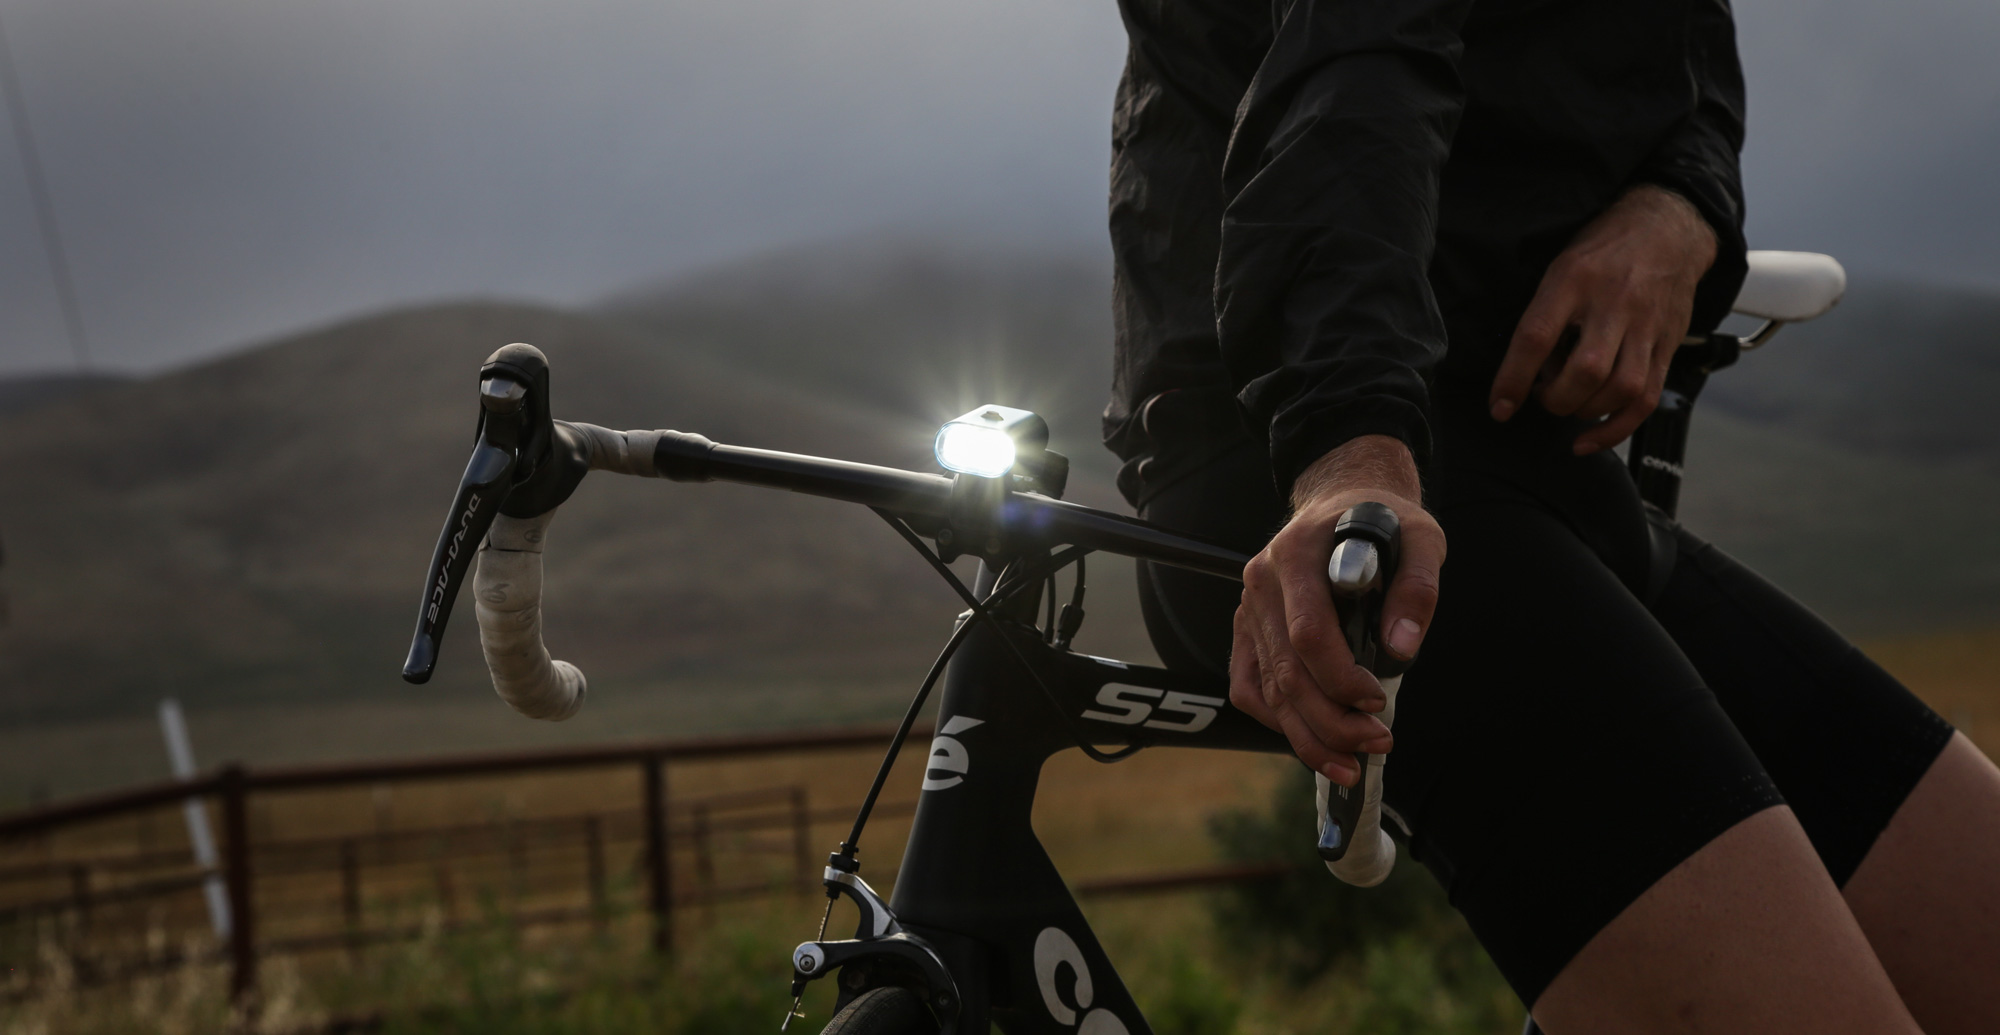 Handlebars and LED